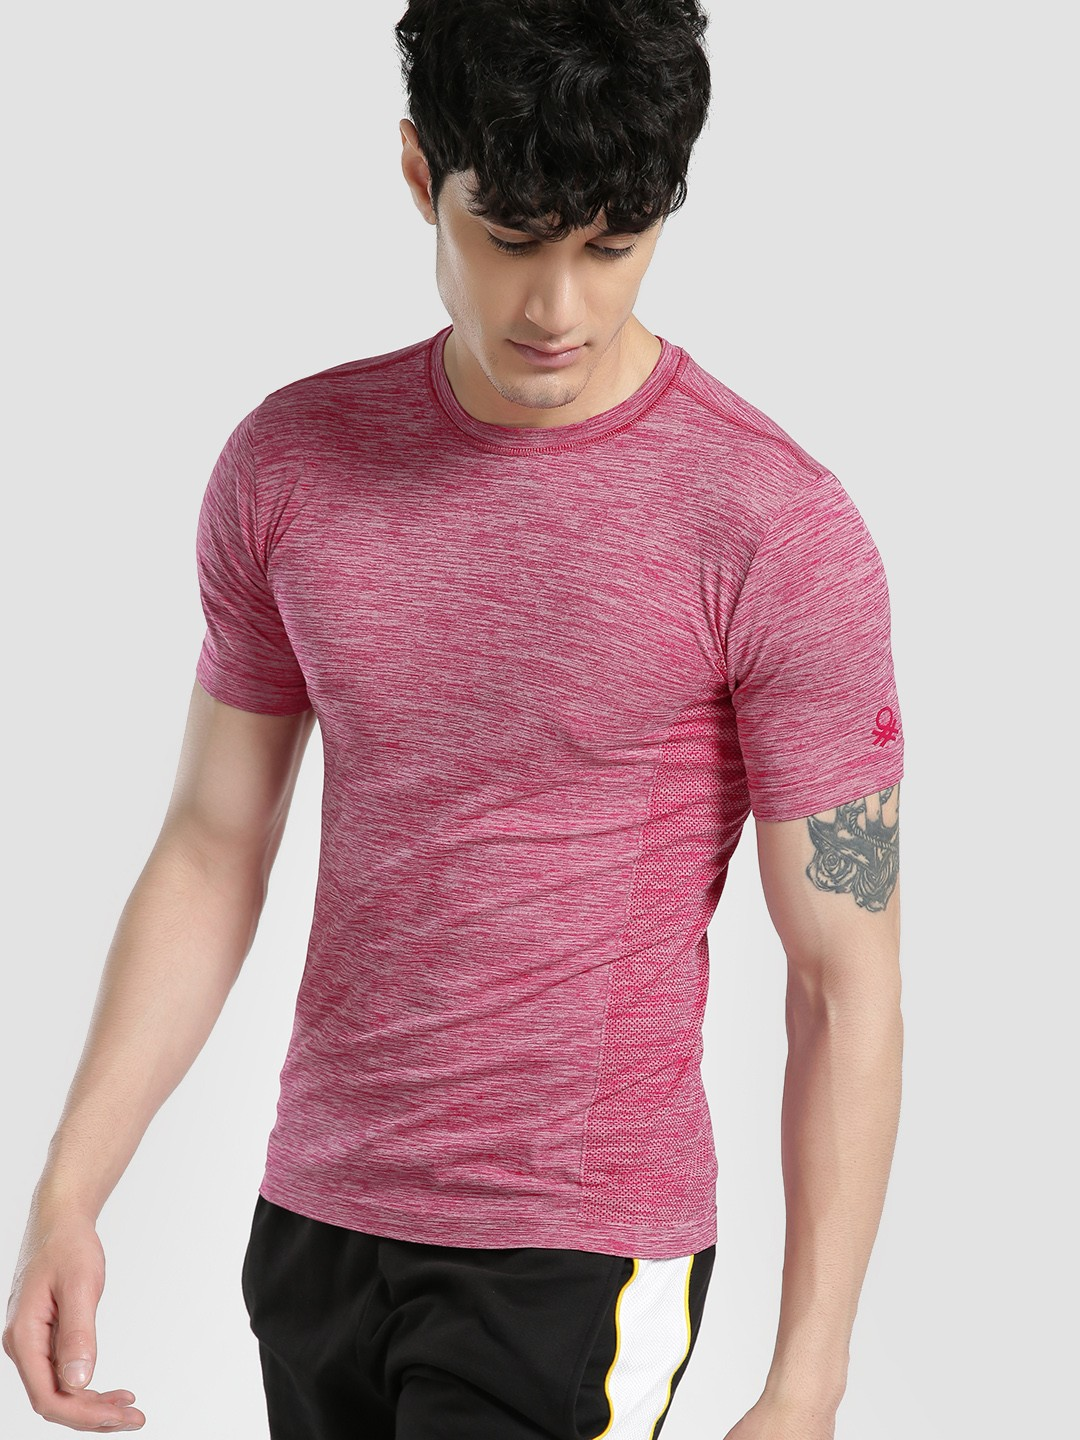 Under Colors of Benetton Maroon Seamless Woven Muscle Fit T-Shirt 1